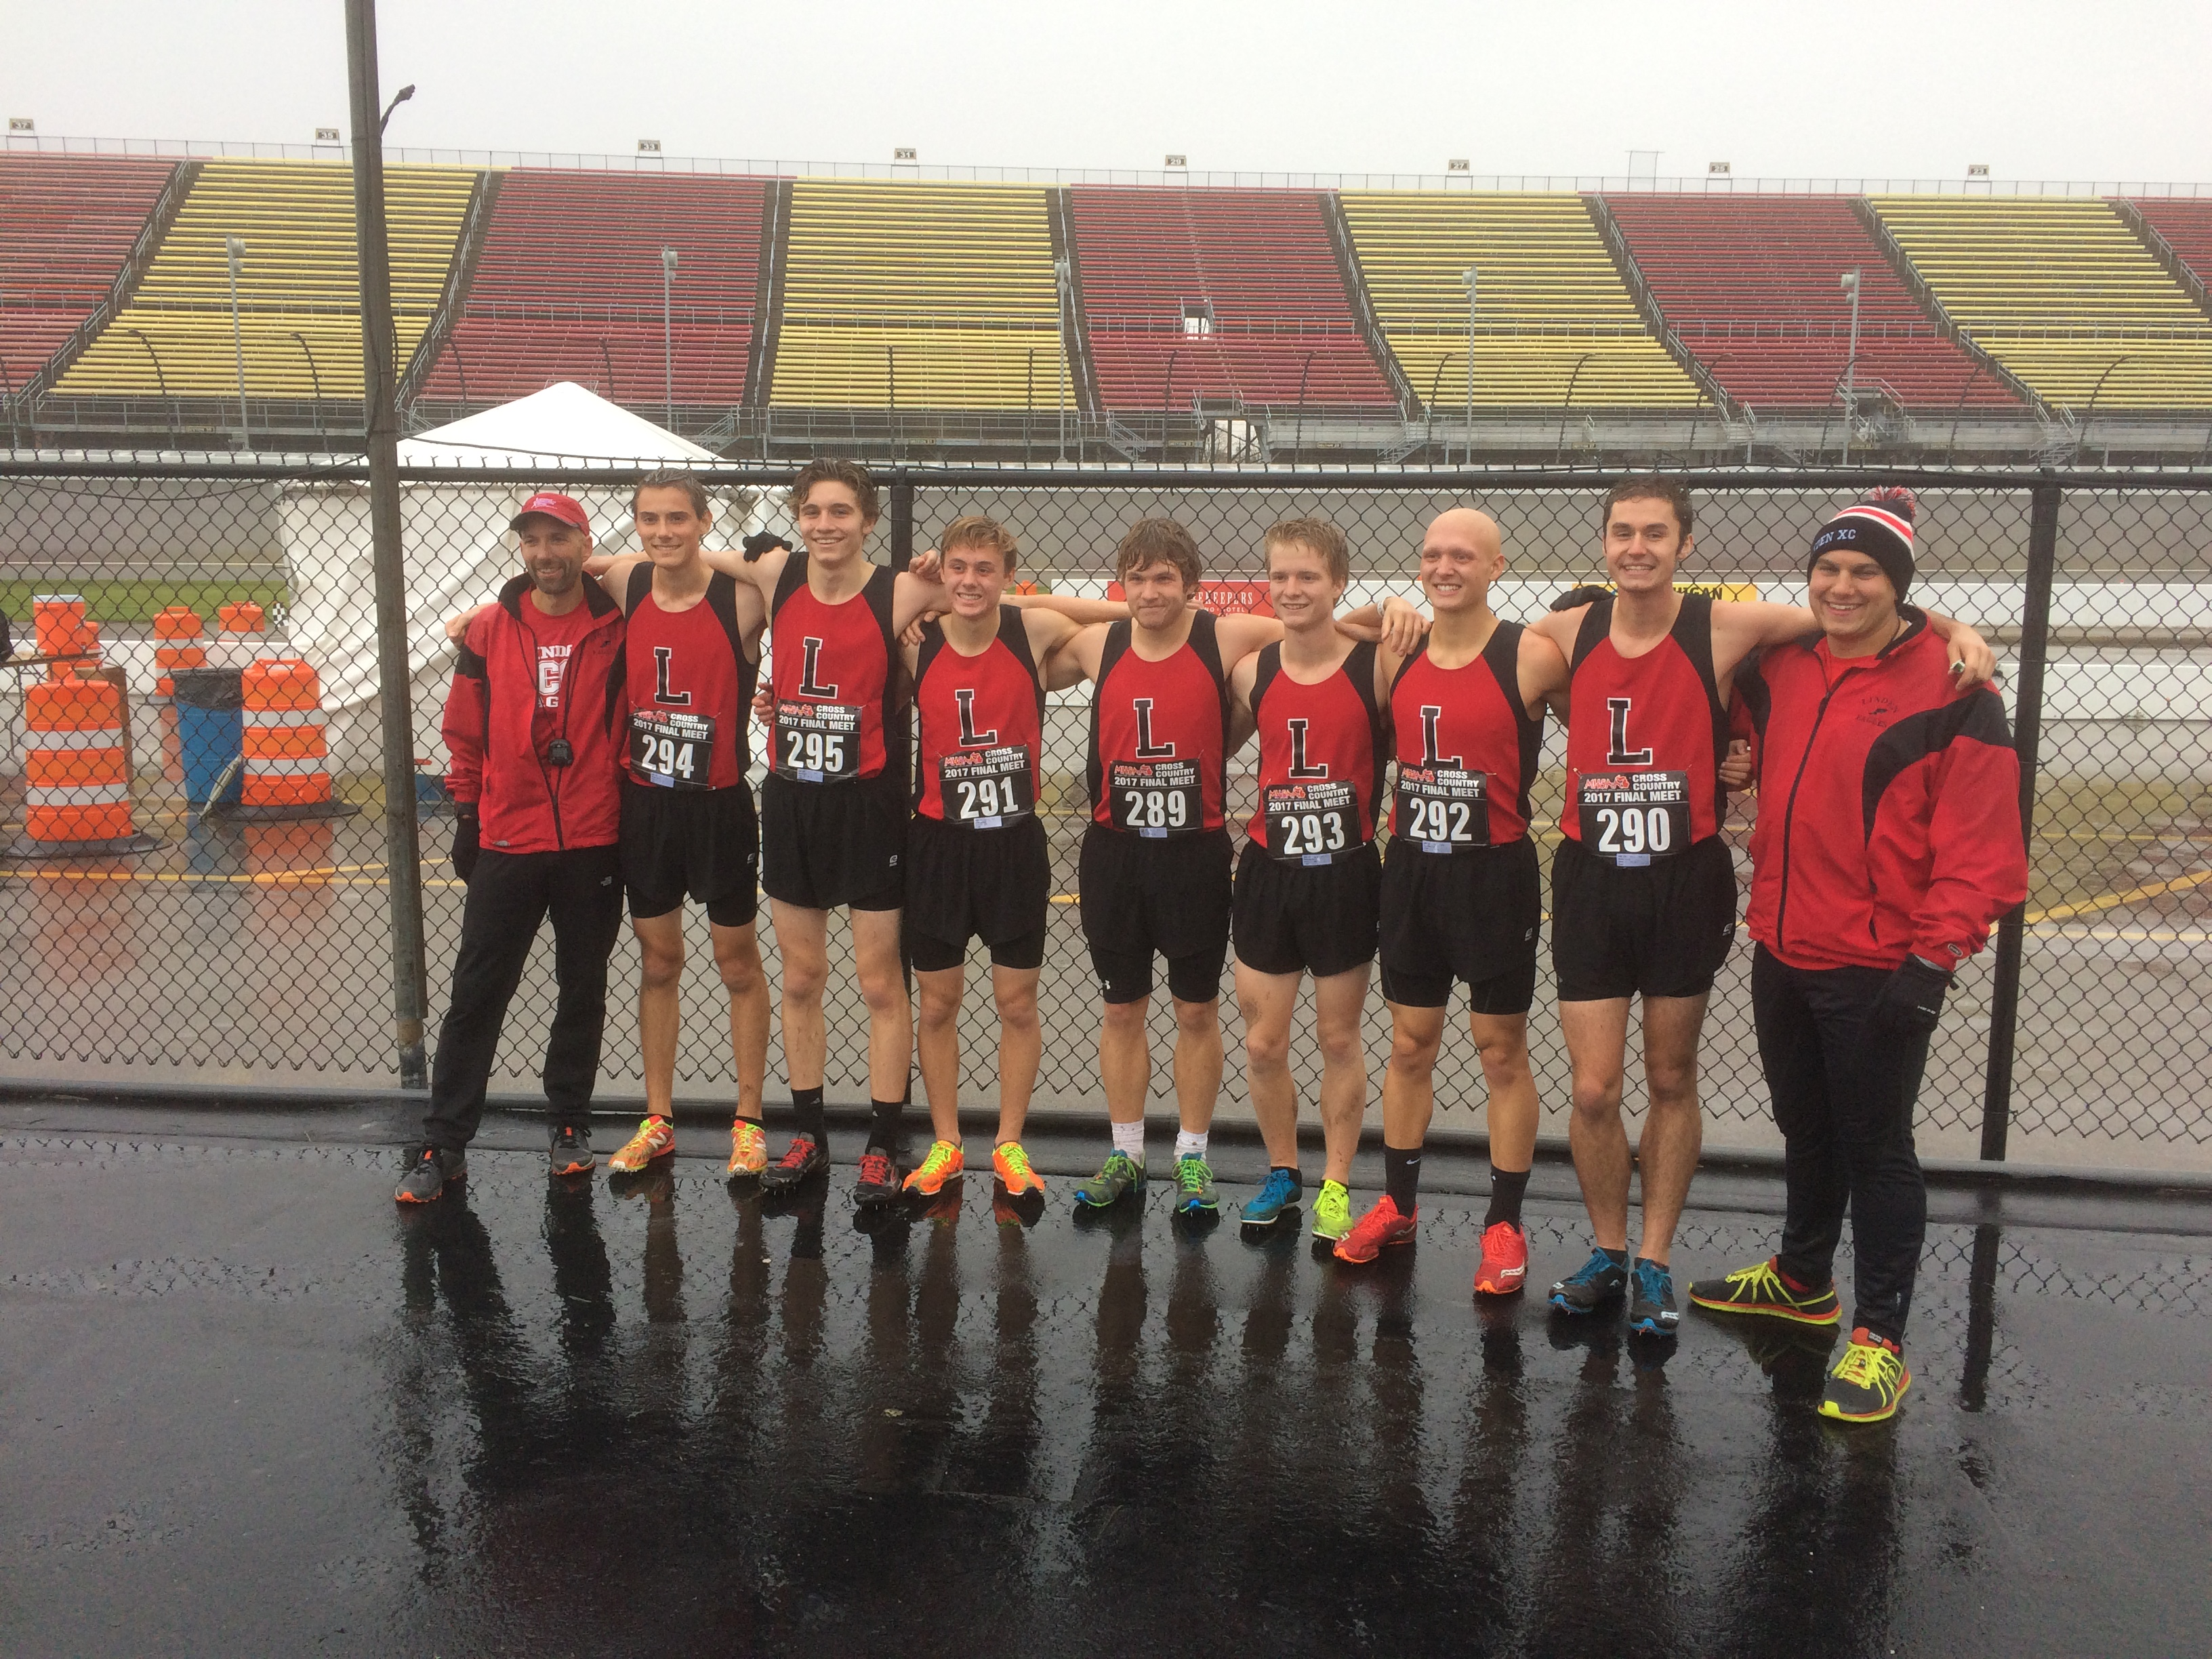 Boys Varsity Cross Country finishes 7th place at MHSAA State Finals